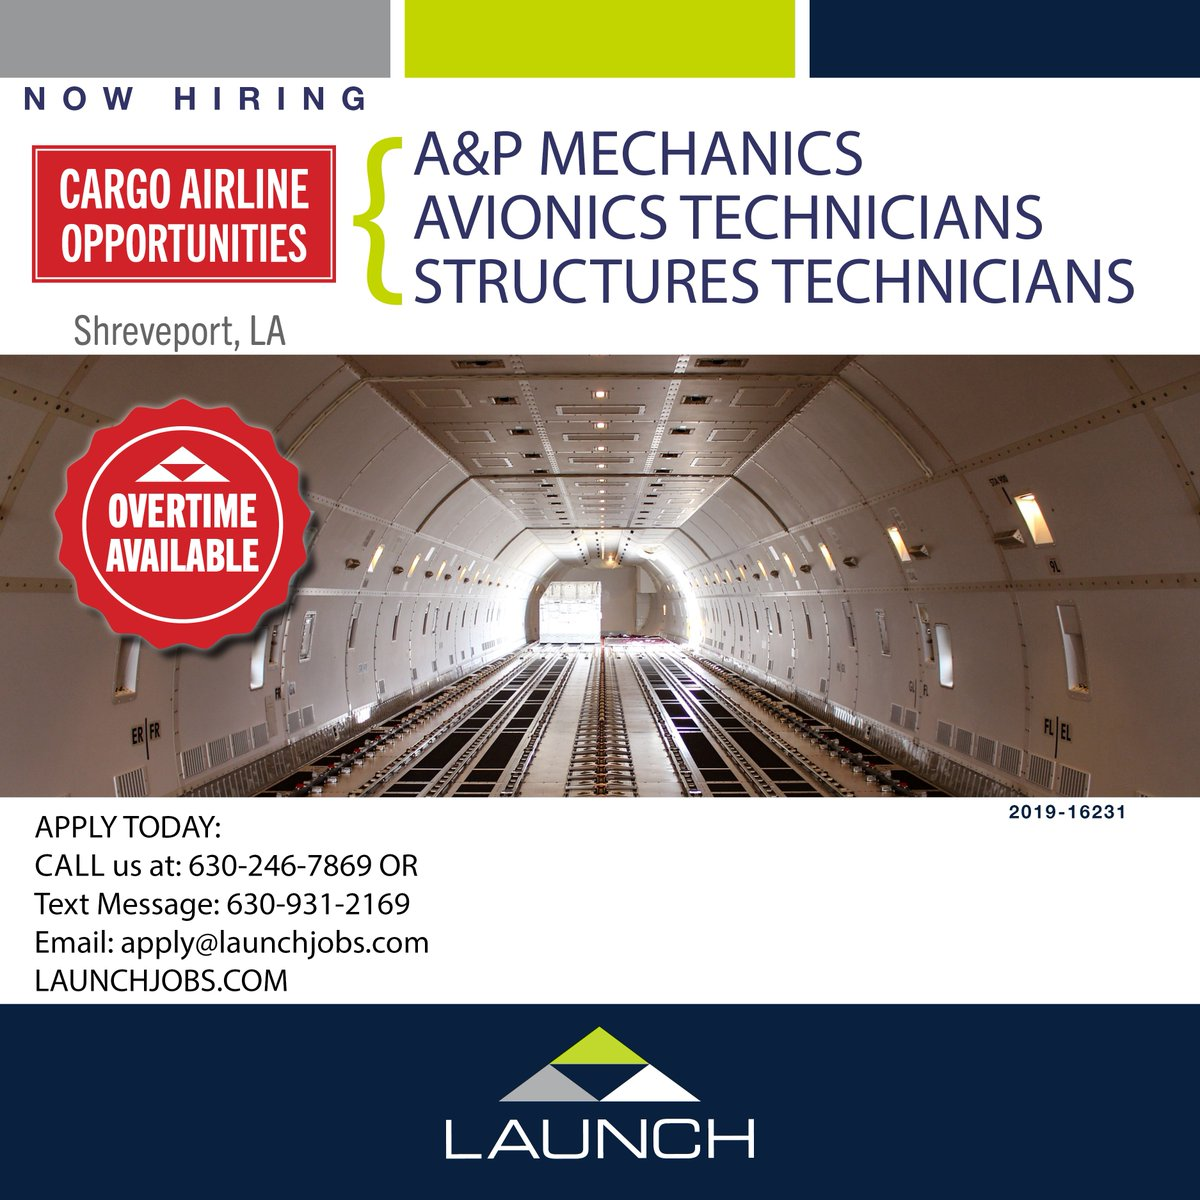 APPLY FOR THIS OPPORTUNITY DIRECTLY FROM OUR WEBSITE: https://www.launchtws.com/jobs/?city=shreveport…  #structures #sheetmetal #maintenance #repair #overhaul #install #technician #avionics #airline #cargoairline #aviationjobs #airframeandpowerplant #composites #hangar #aerospacepic.twitter.com/Xrb8uM2V5p